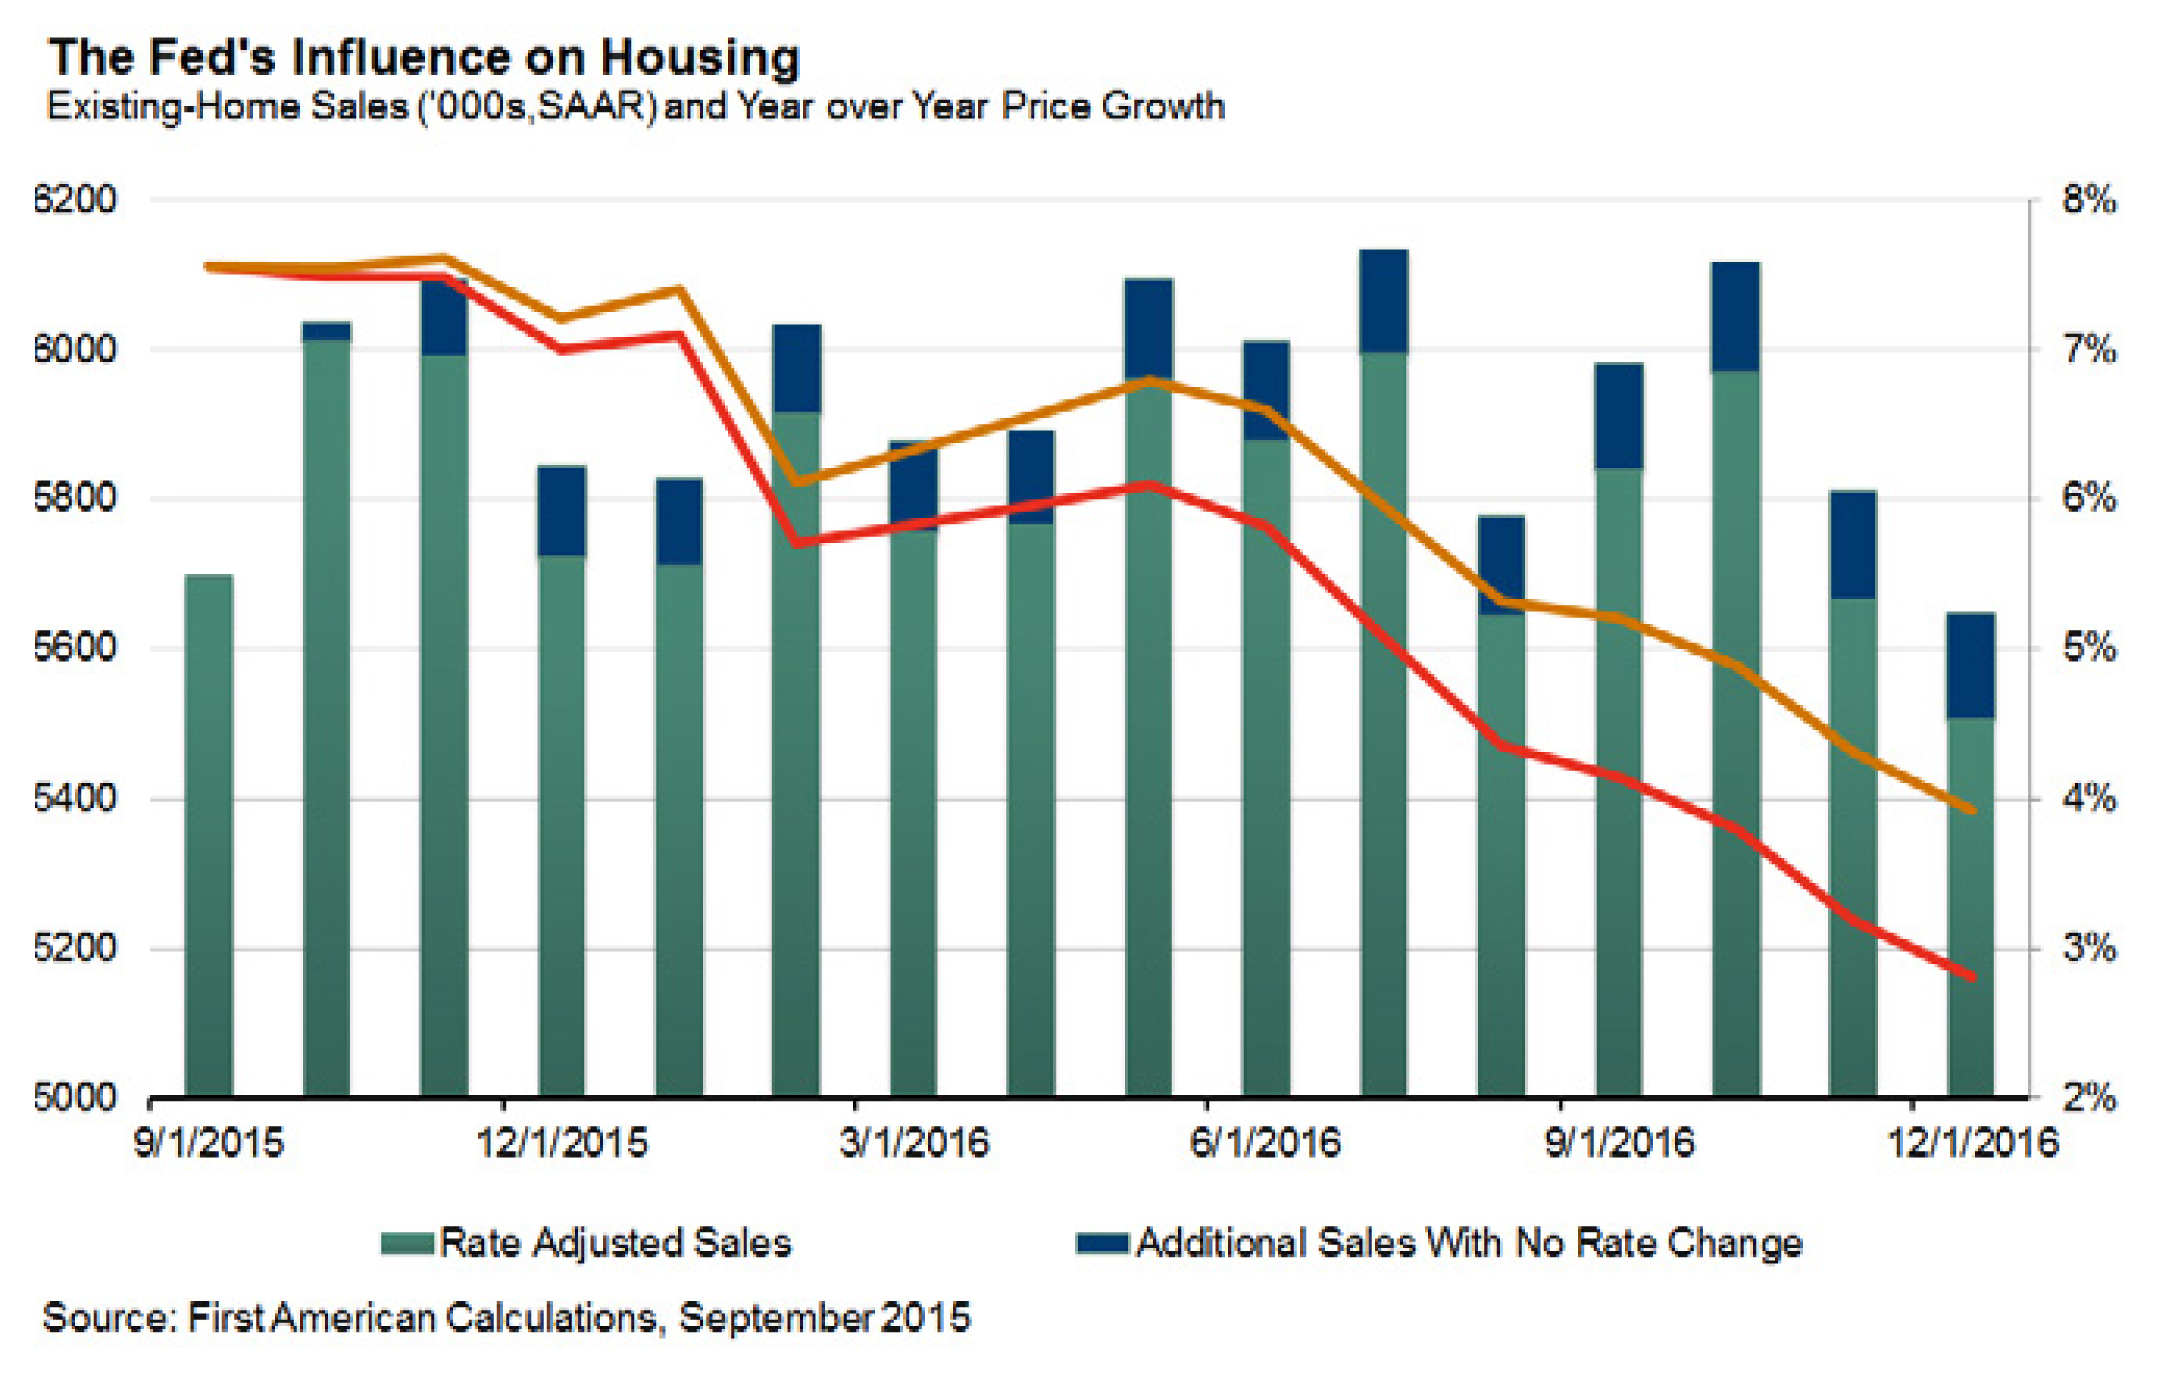 Feds influence on housing